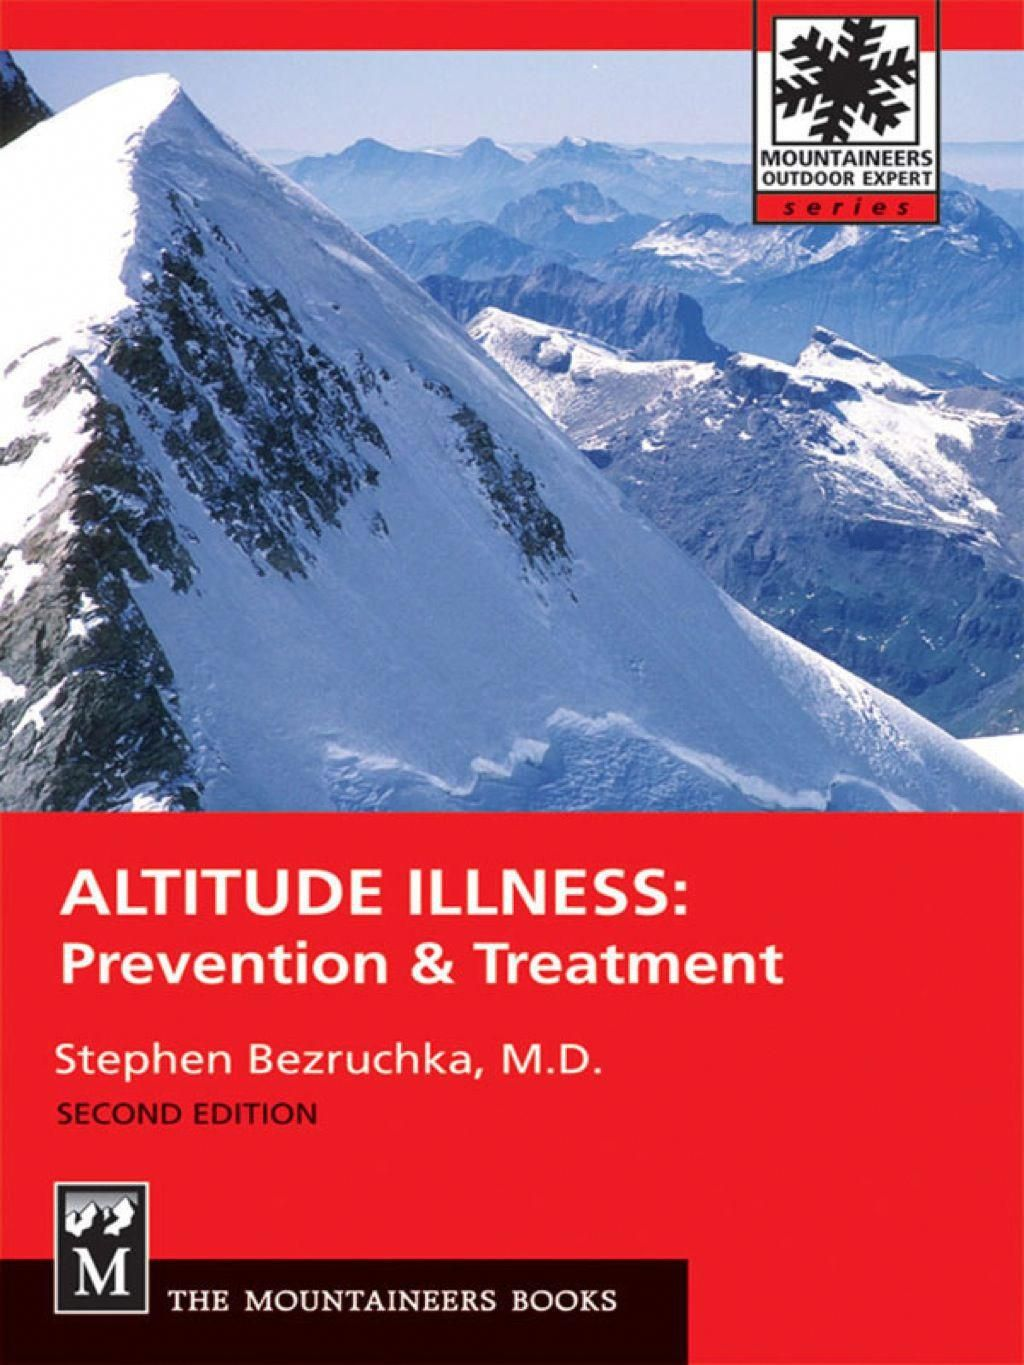 Altitude Illness Prevention (eBook) (With images